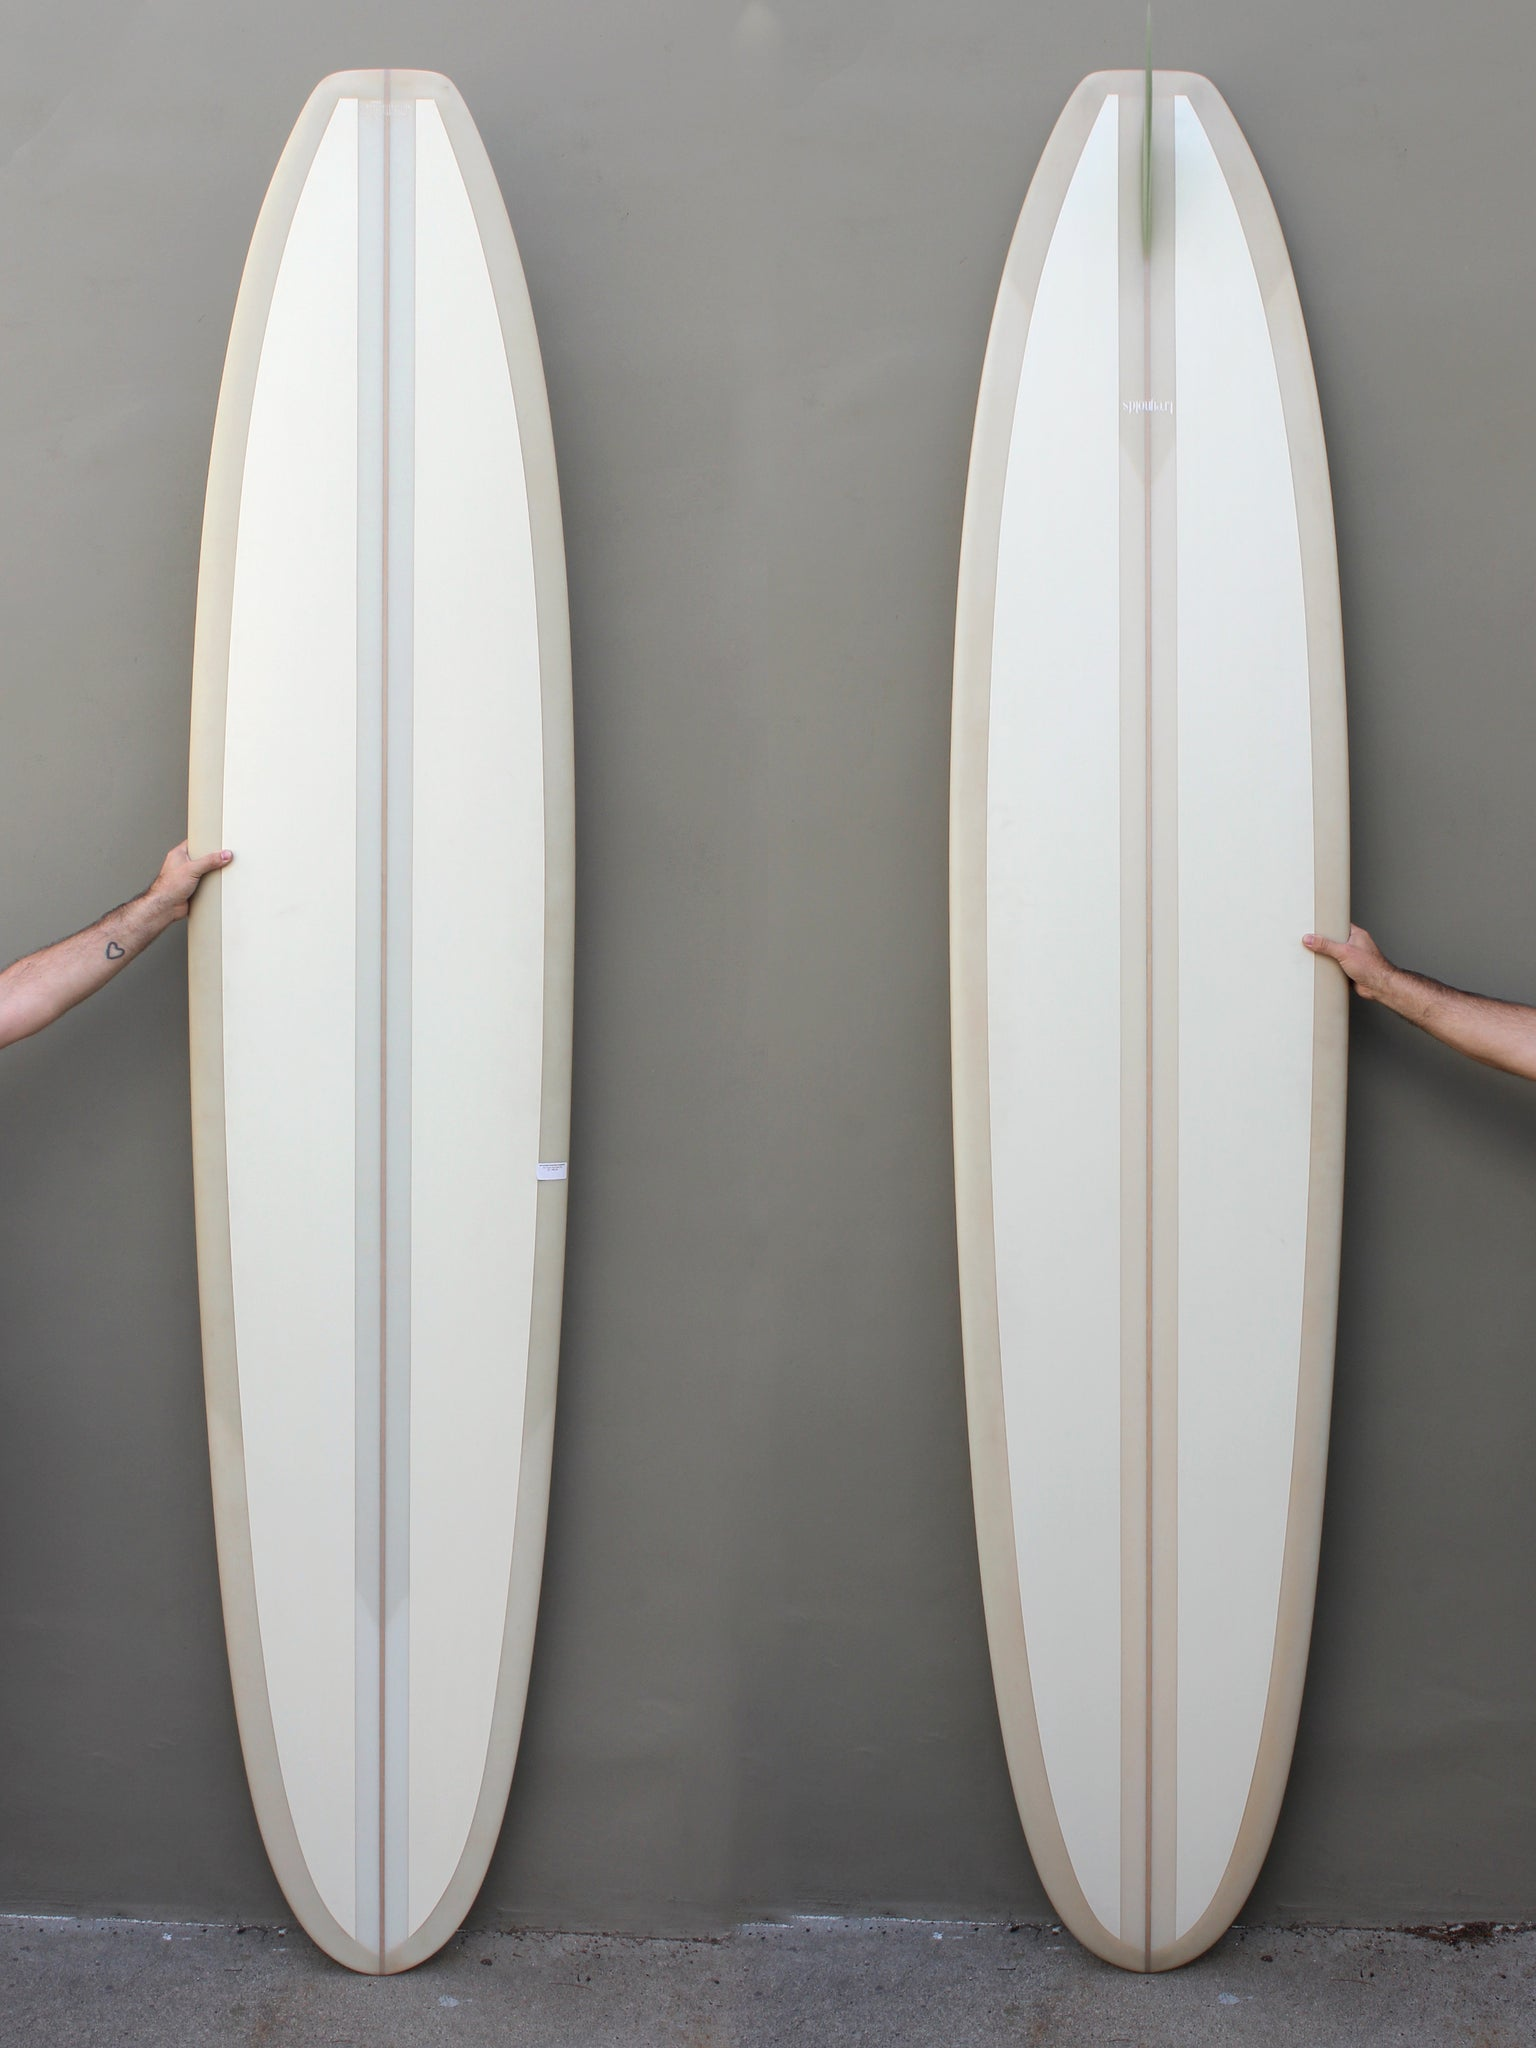 9'6 Travis Reynolds Pig